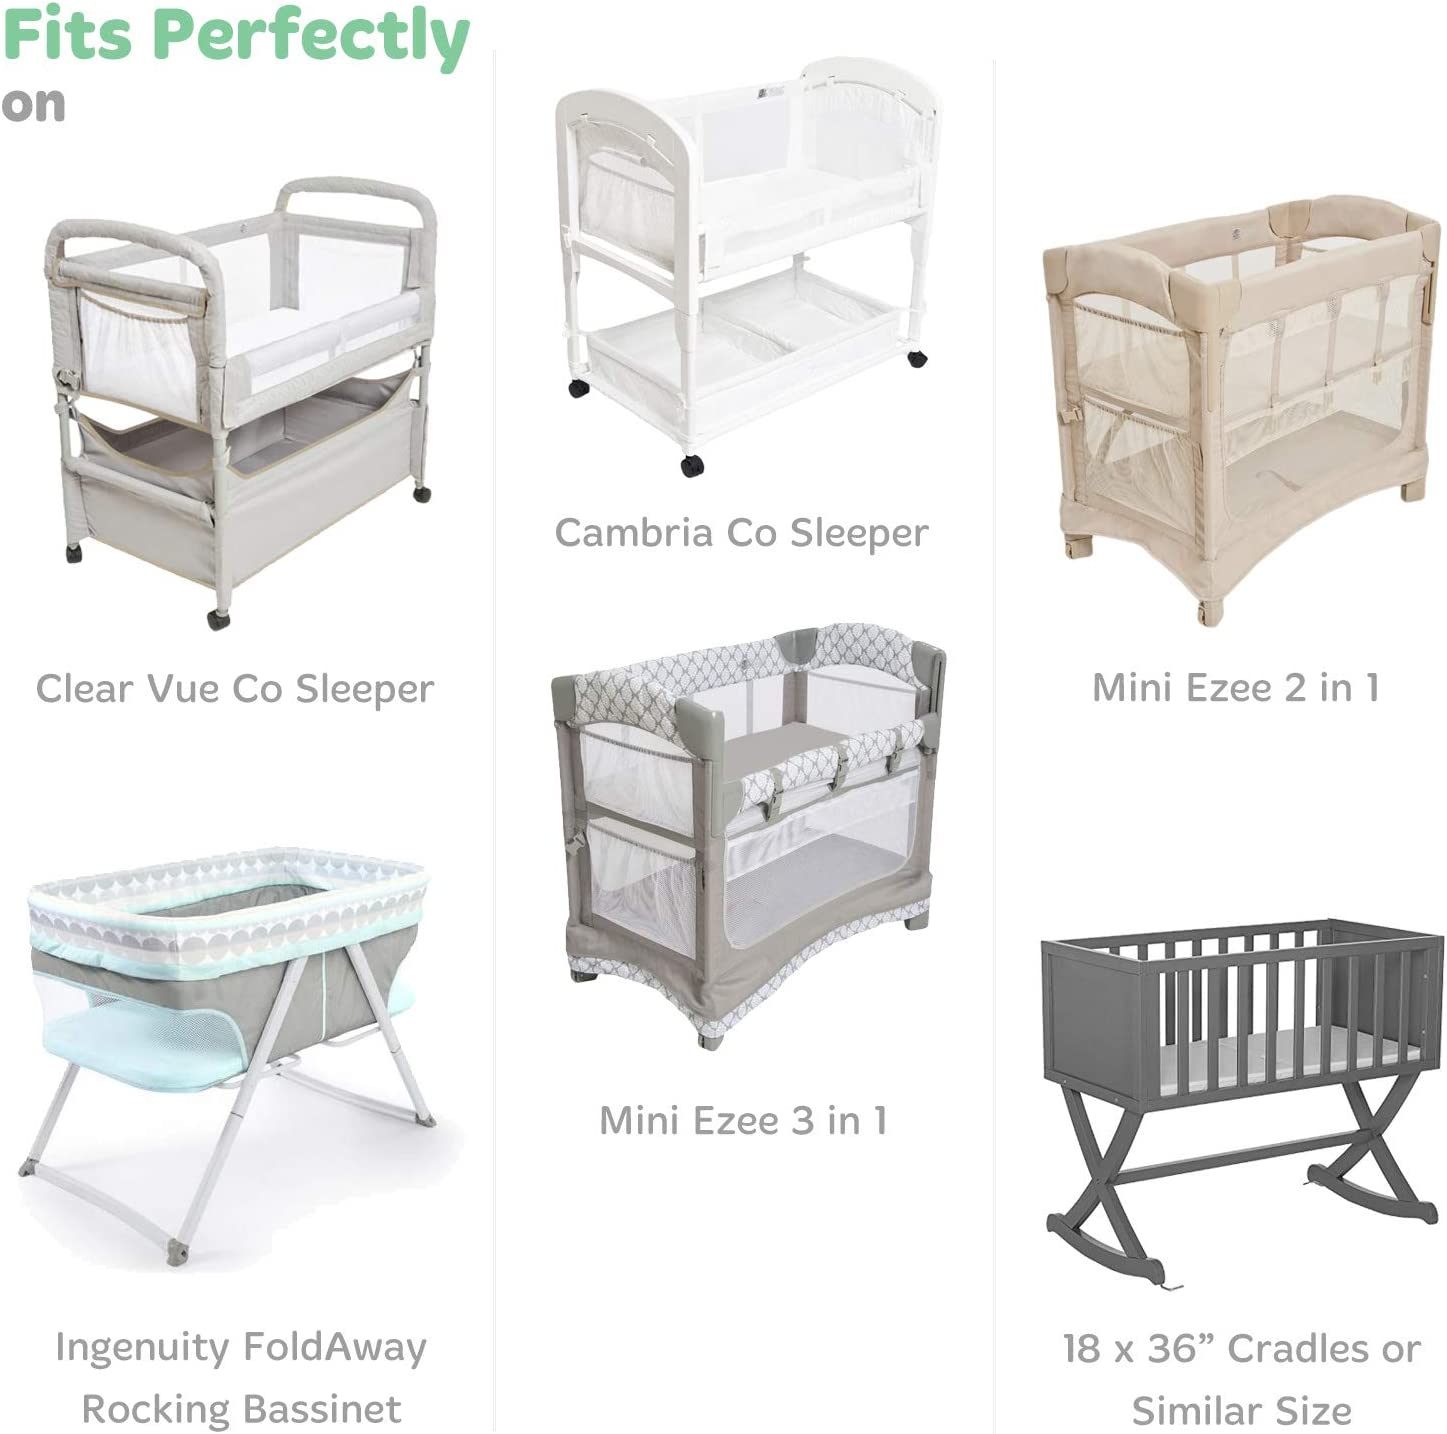 Joey /& Joan Baby Cradle Sheet Fitted 18 x 36 Mini Ezee Bassinet Light Grey Compatible with Arms Reach Co Sleeper Cambria Clear Vue Pure Flannel Cotton